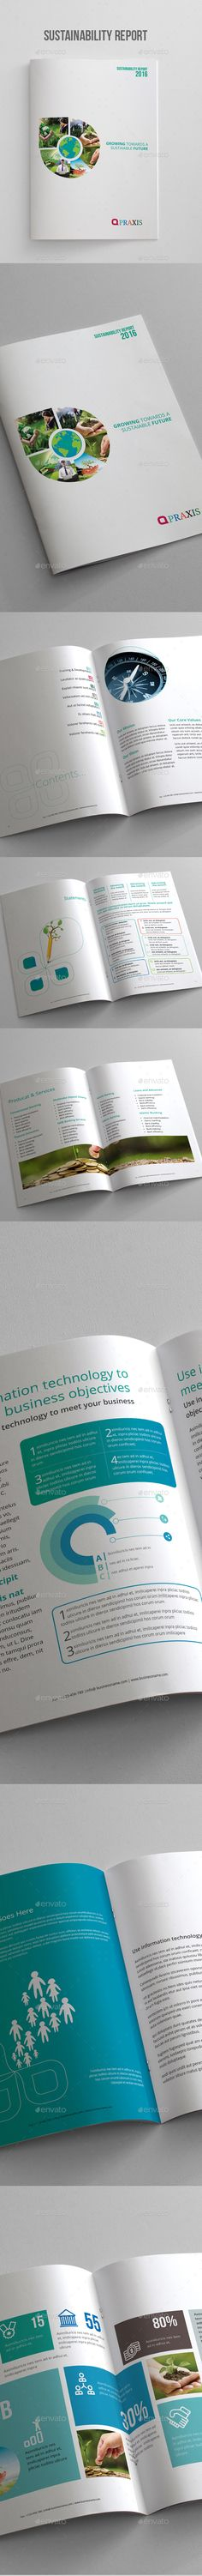 Sustainability Report Brochure — InDesign INDD #brochure #print • Available here → https://graphicriver.net/item/sustainability-report-brochure/17378244?ref=pxcr